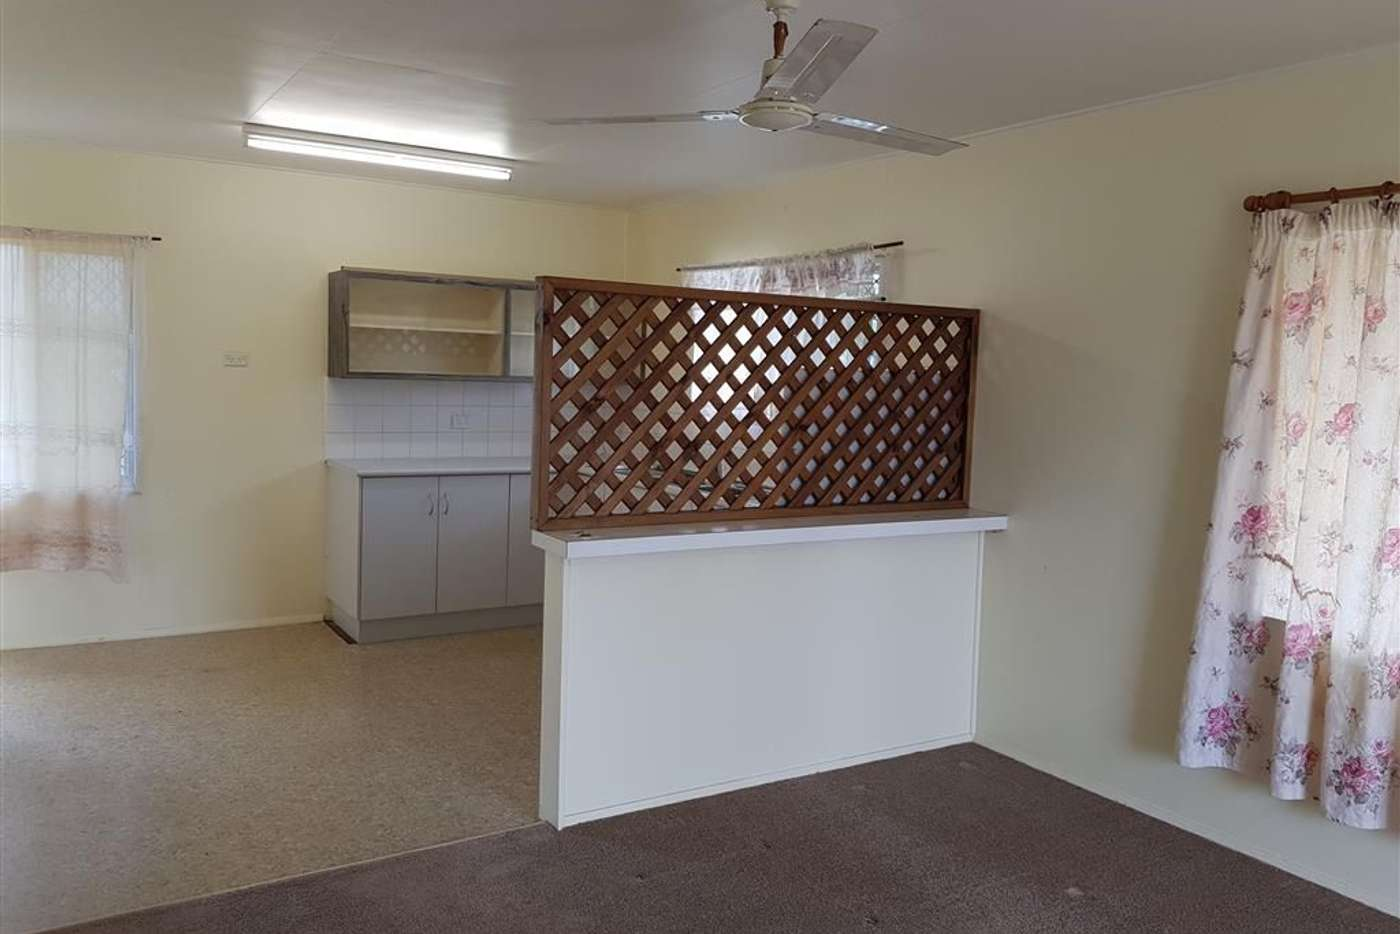 Sixth view of Homely house listing, 23 Cardier Road, Wangan QLD 4871